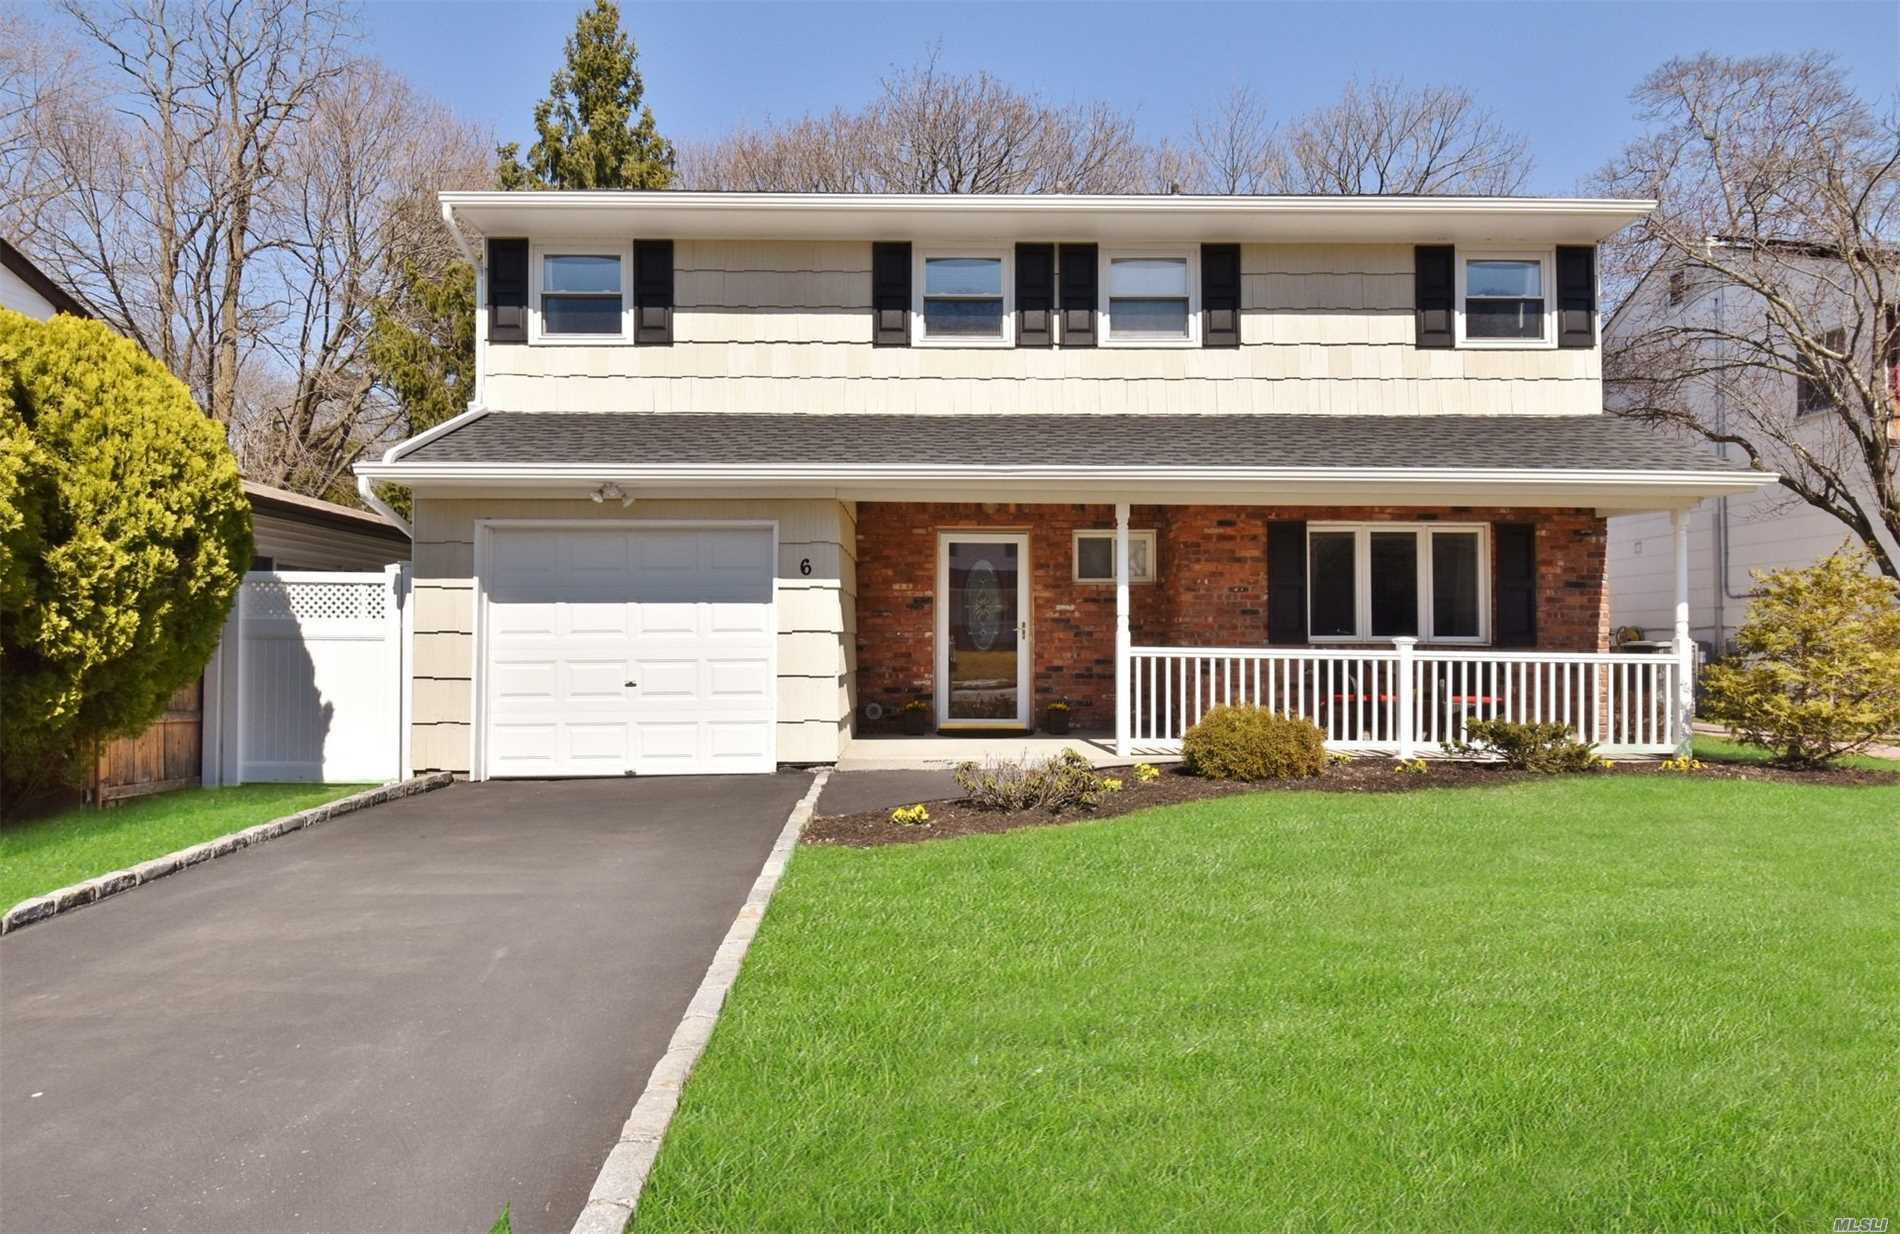 Fabulous 4 Bedroom, 2.5 Bath Colonial/ Splanch Home is located in a private Cul-de-sac. This immaculate home offers generous sized rooms and is move in ready with many updates. Gas conversion with new heat system and Hot water tank, 2017 roof and gutters, updated electric, full resin fencing, Updated kitchen and baths, Spacious floor plan, gleaming hard wood floors, wood burning fire place, Cathedral ceilings and more!